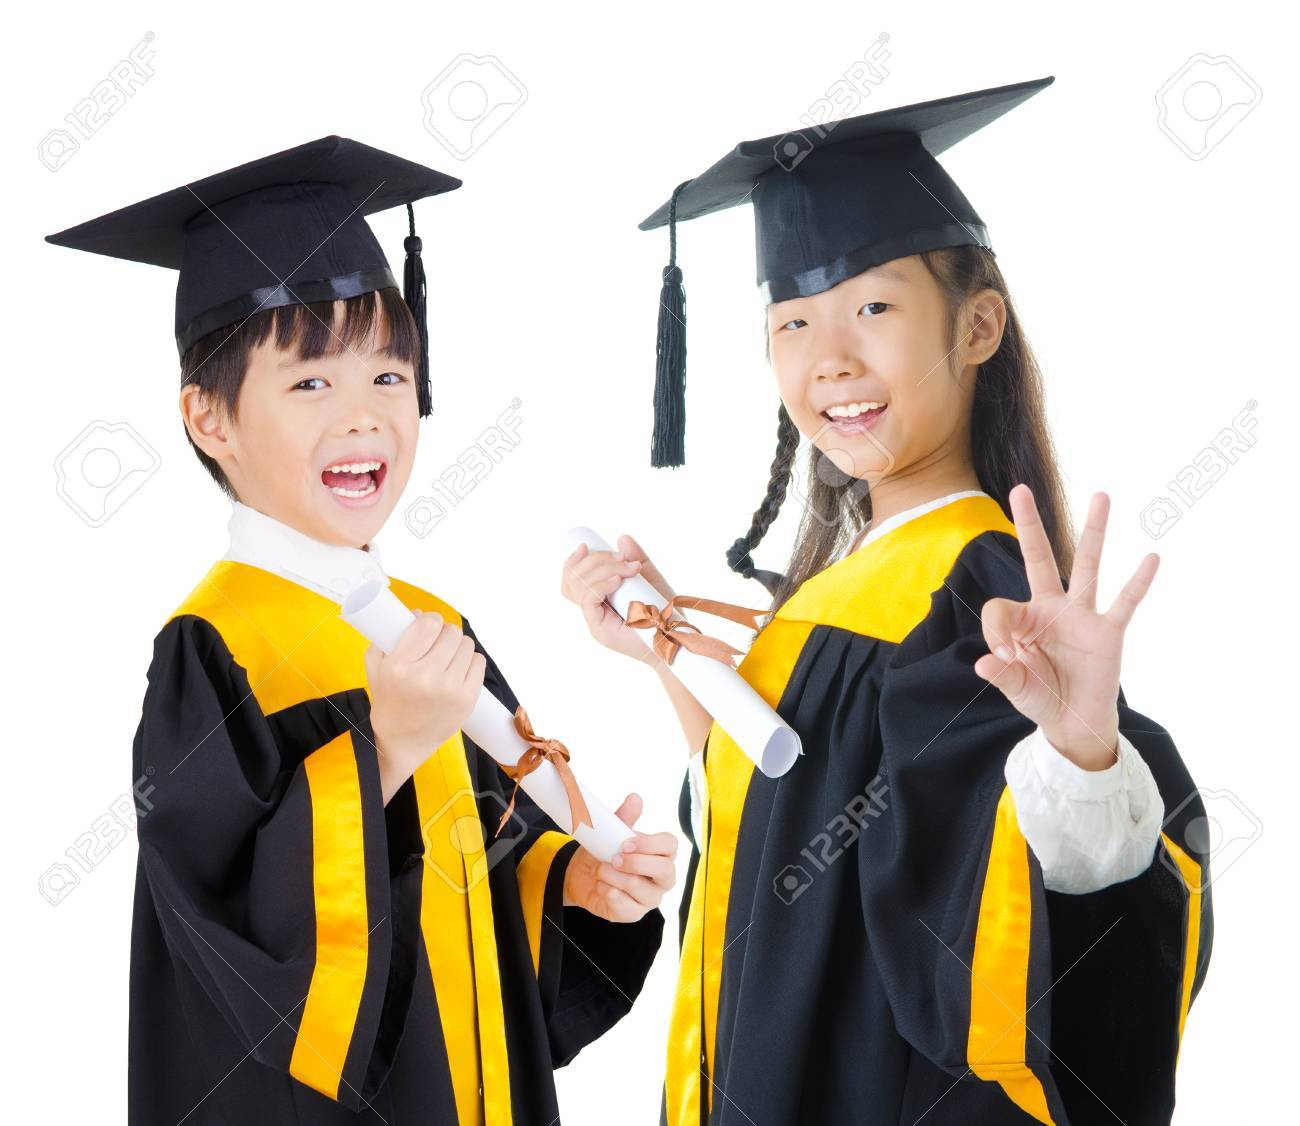 Asian Kids In Graduation Gown Stock Photo, Picture And Royalty Free ...